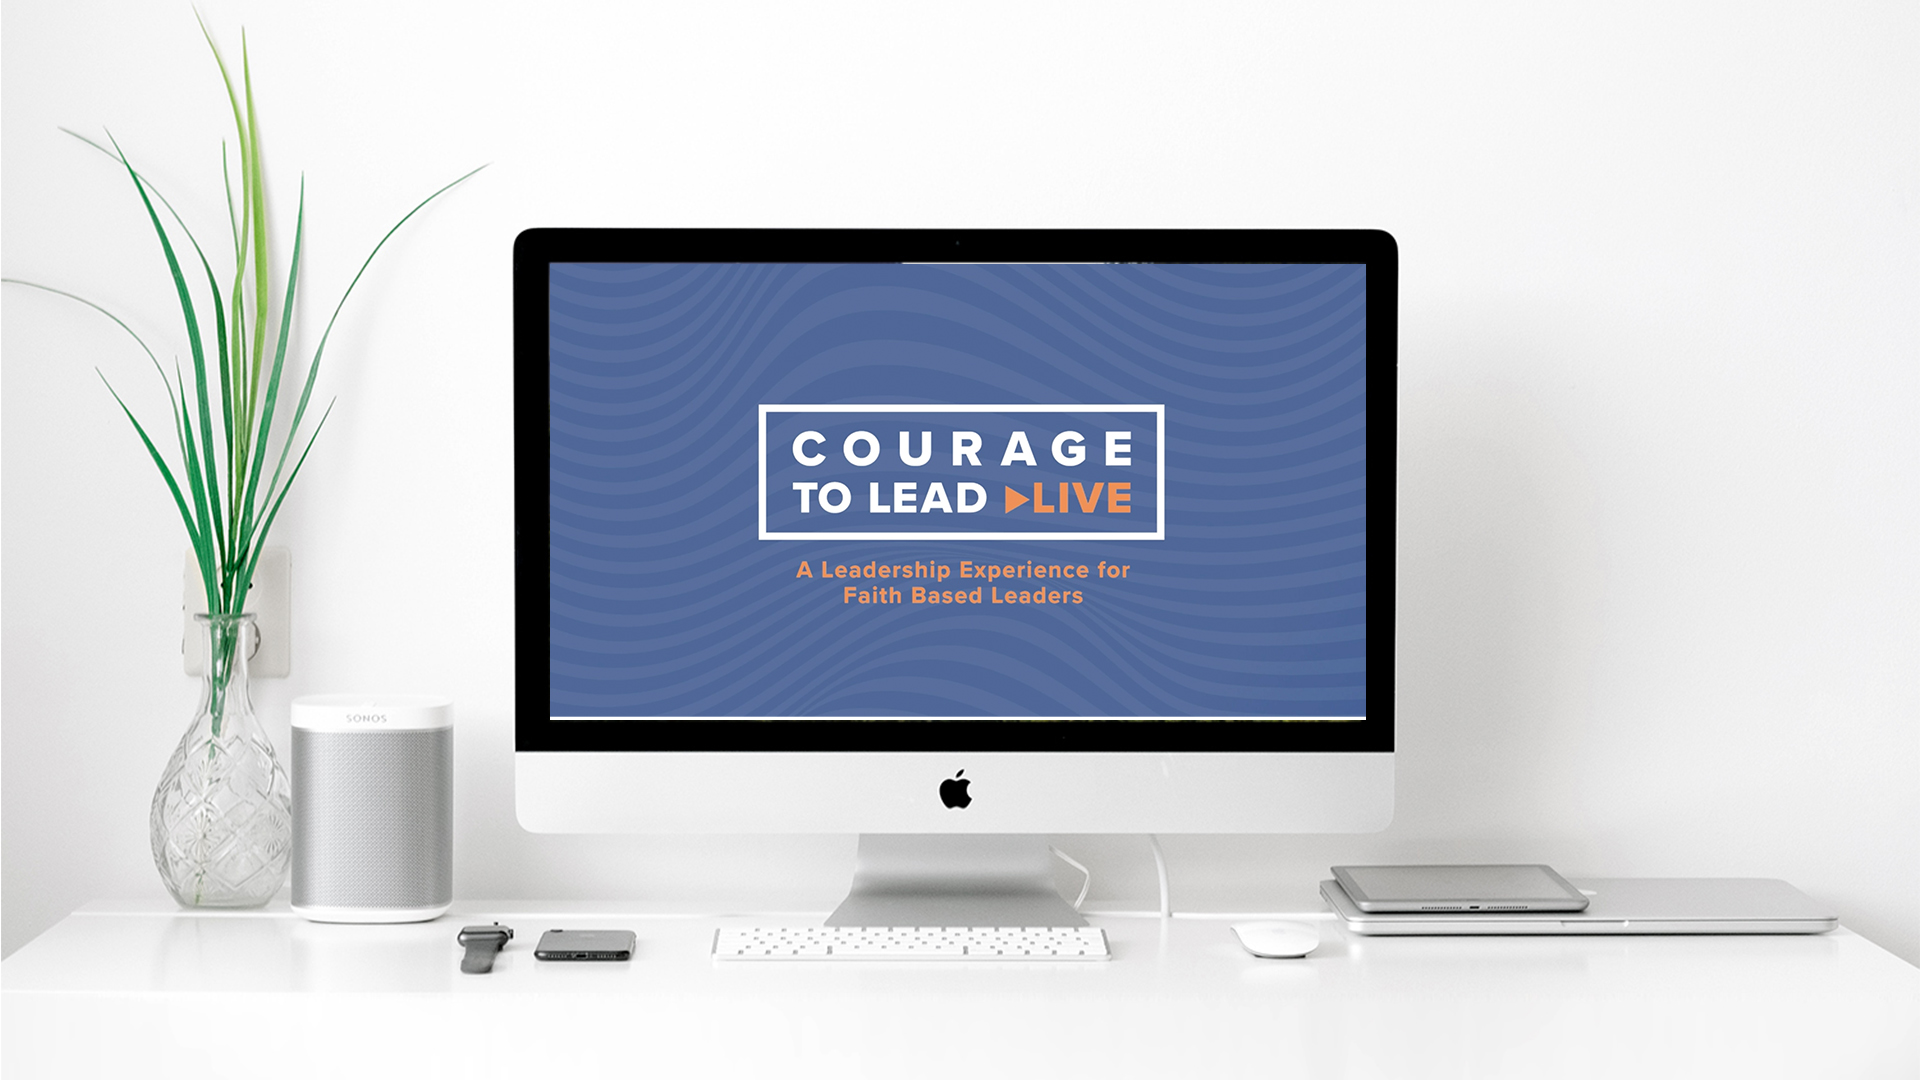 Courage to Lead Live 2021